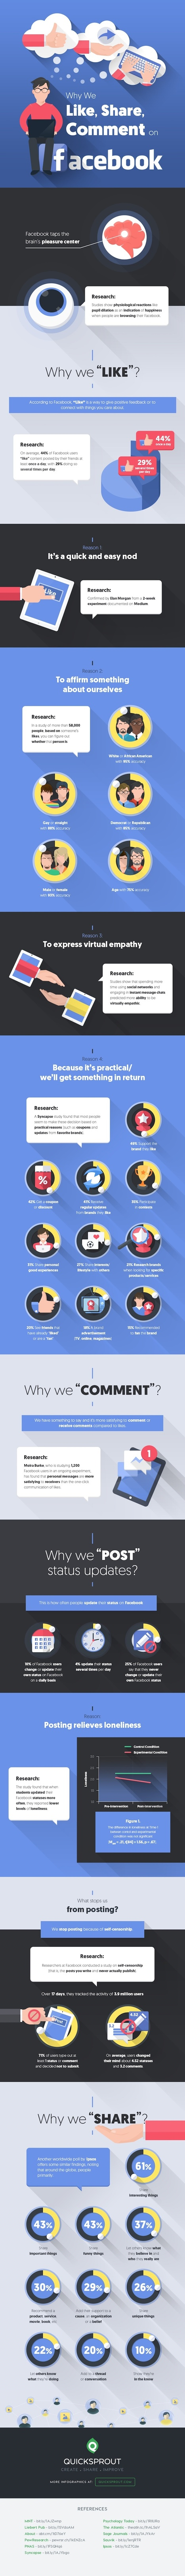 Why People Like, Share, and Comment on Facebook #Infographic | geeky and fun social media news | Scoop.it